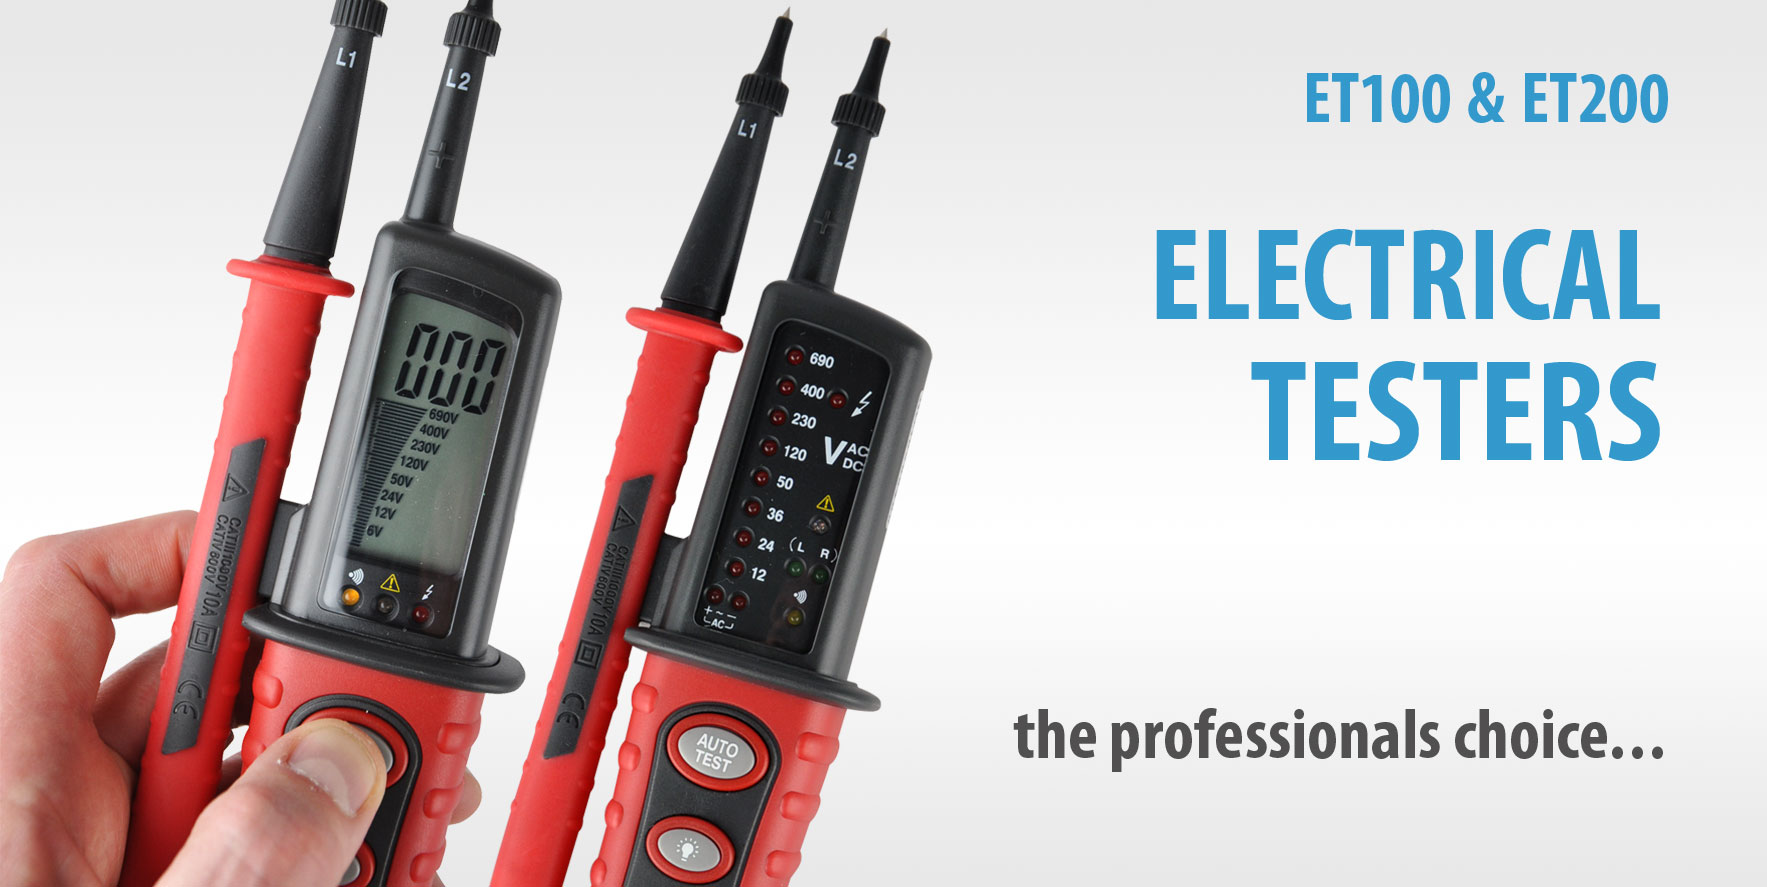 ET100 & ET200 Electrical Testers - Click to View